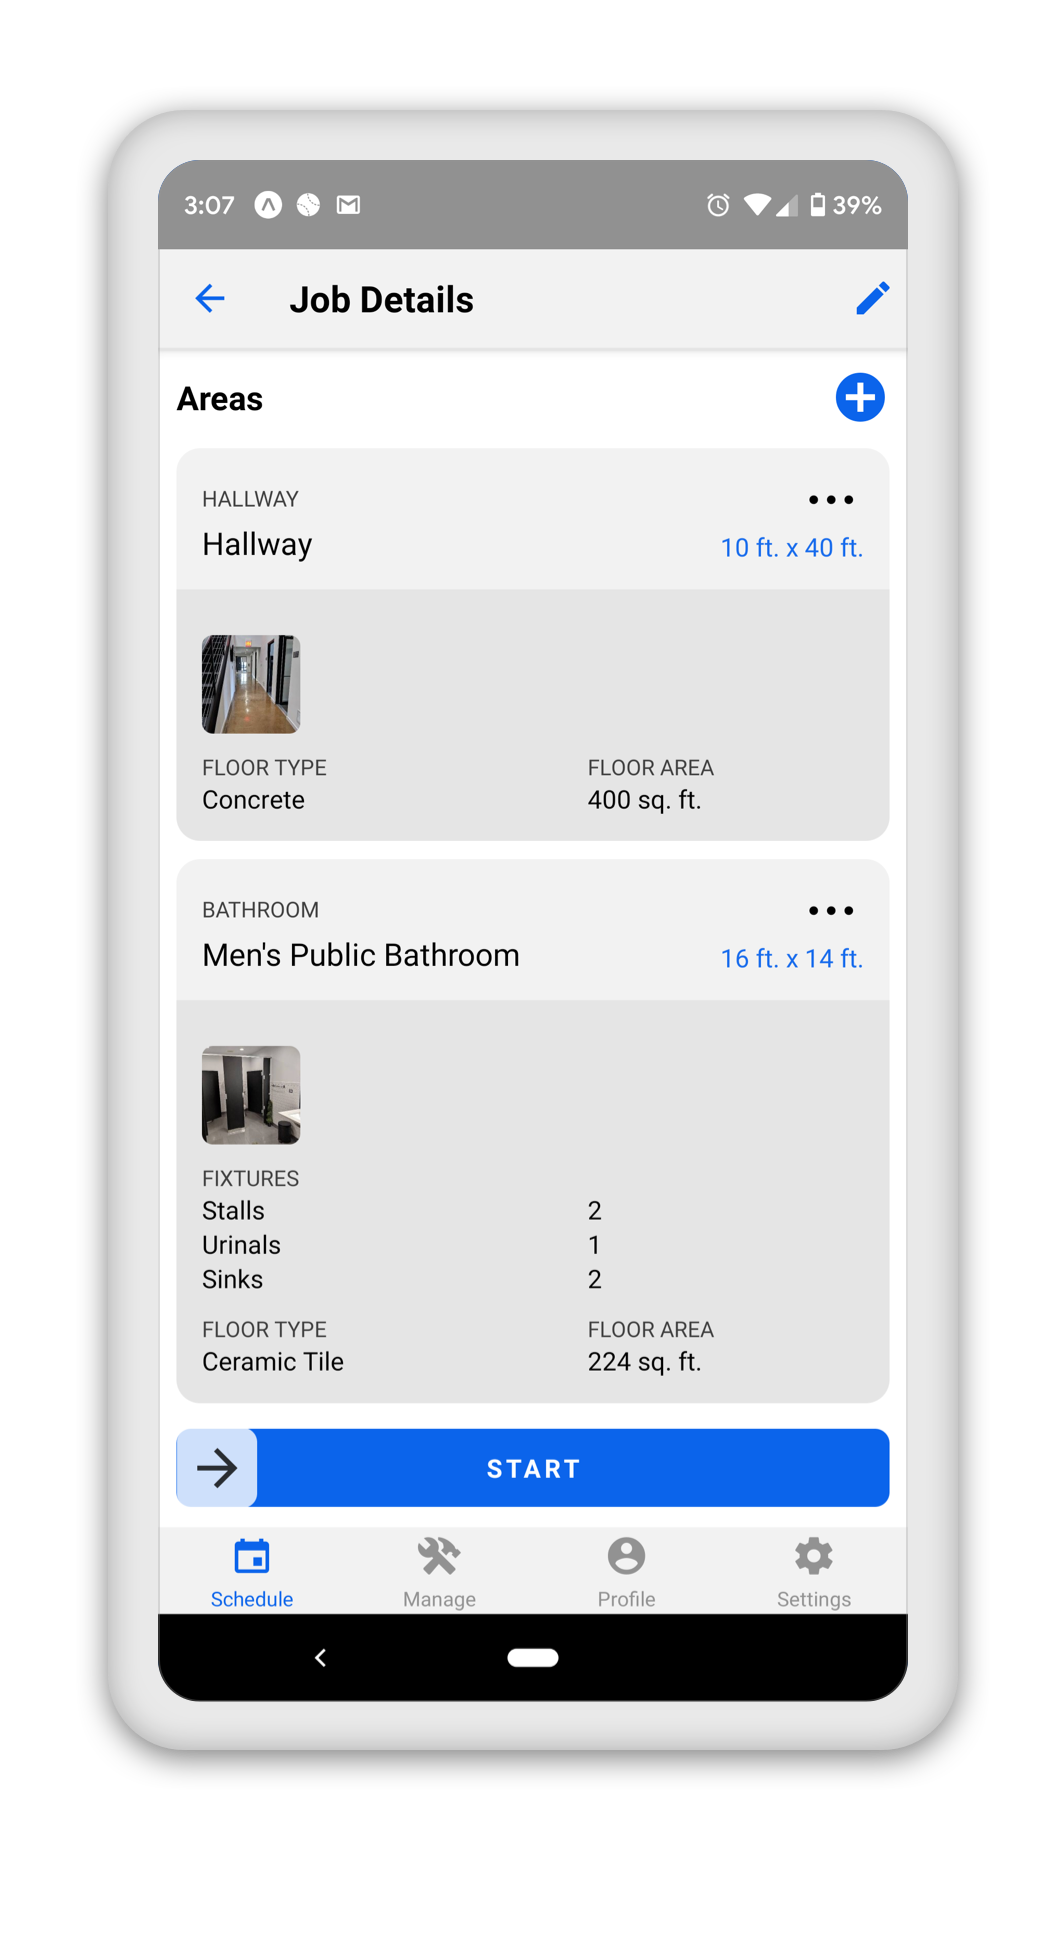 Route Walkthrough Builder for Janitorial Cleaning Service Companies